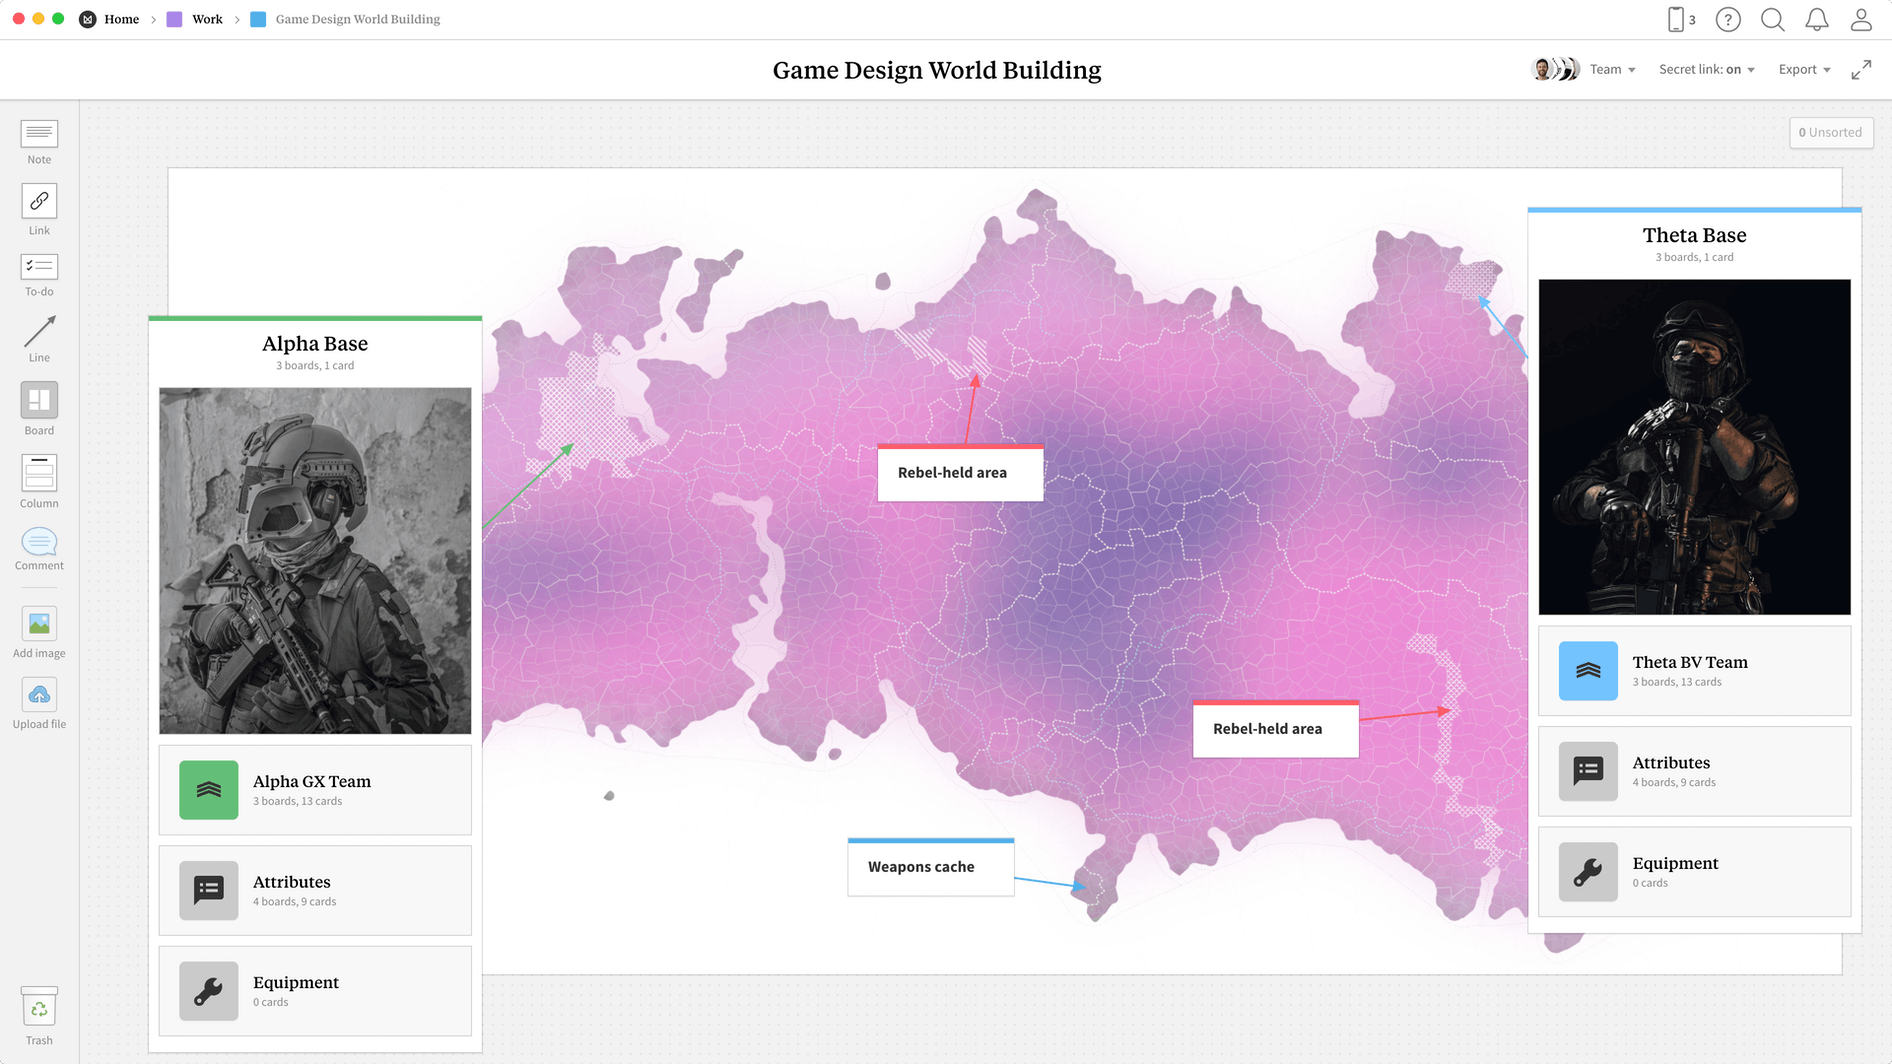 Game World Building  Template, within the Milanote app